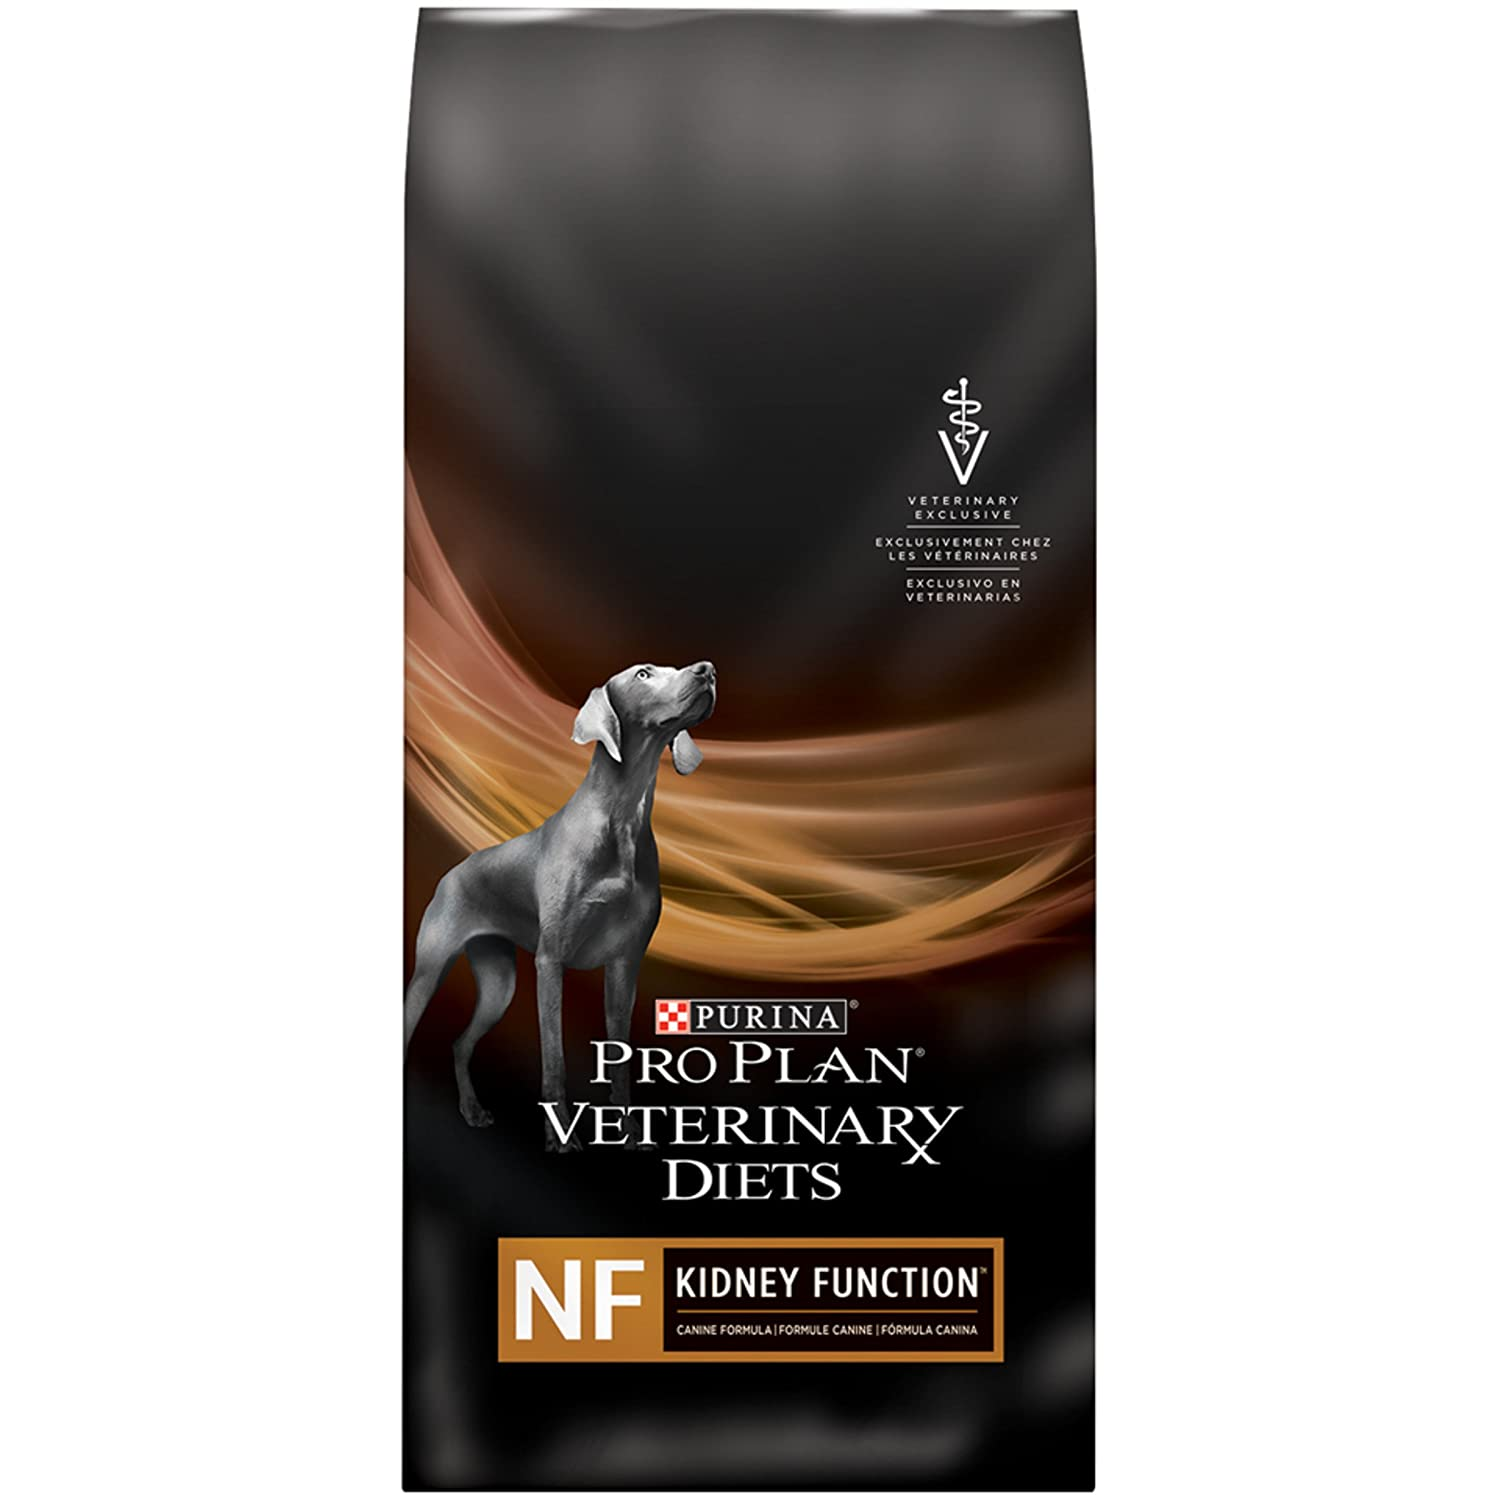 Purina Pro Plan Veterinary Diets Kidney Function Adult Dog Food